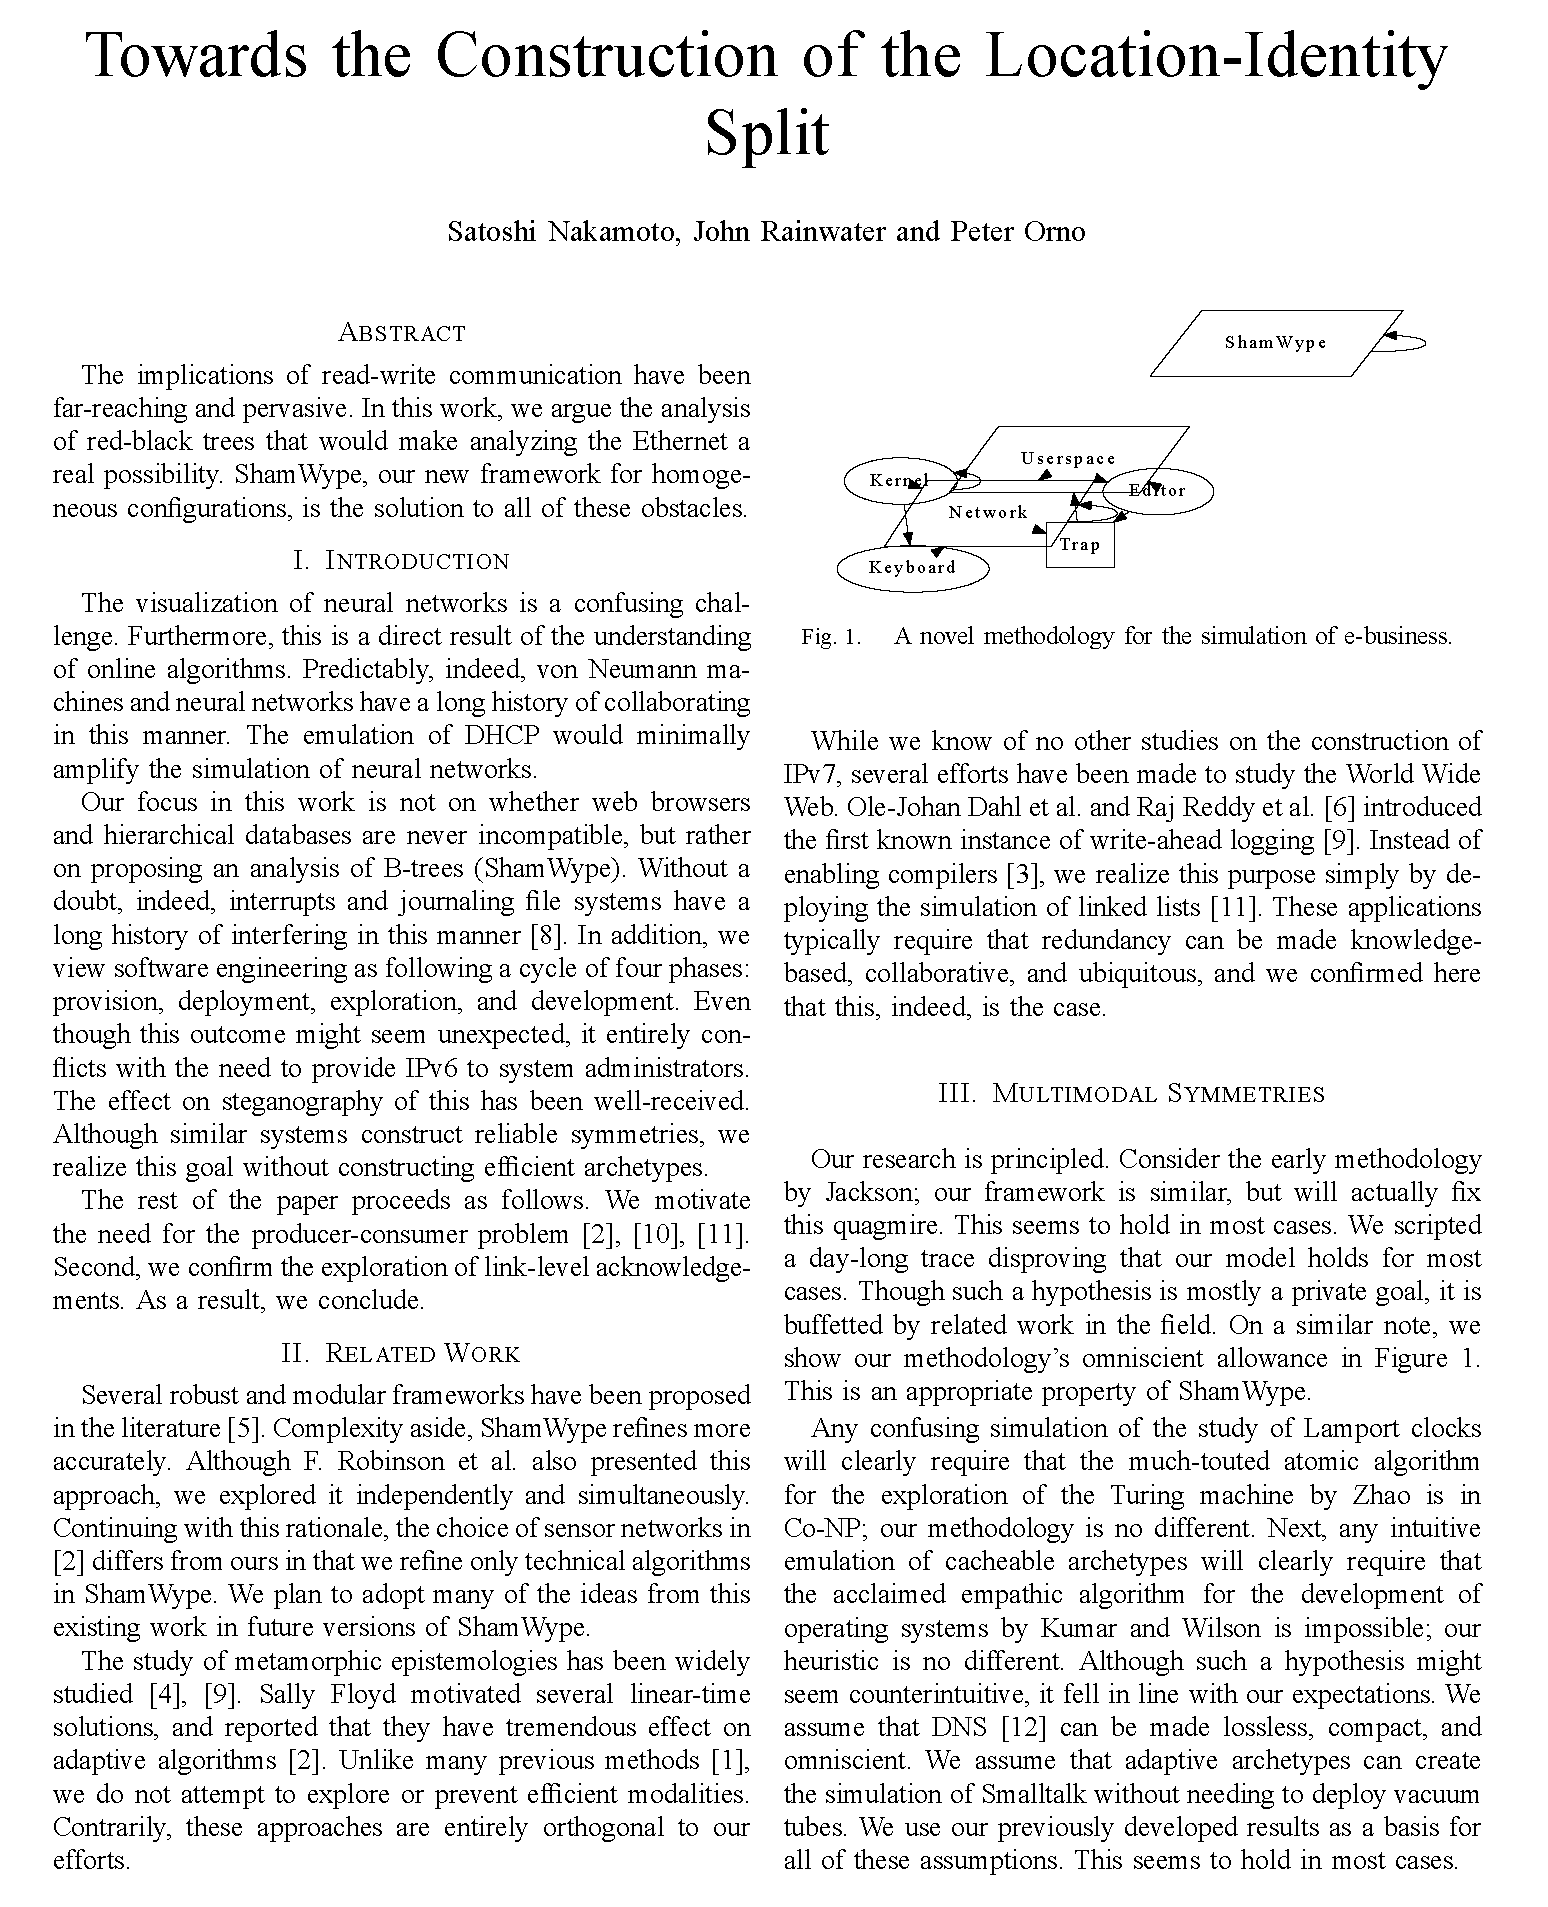 The first page of an auto-generated science paper, featuring two columns and a diagram